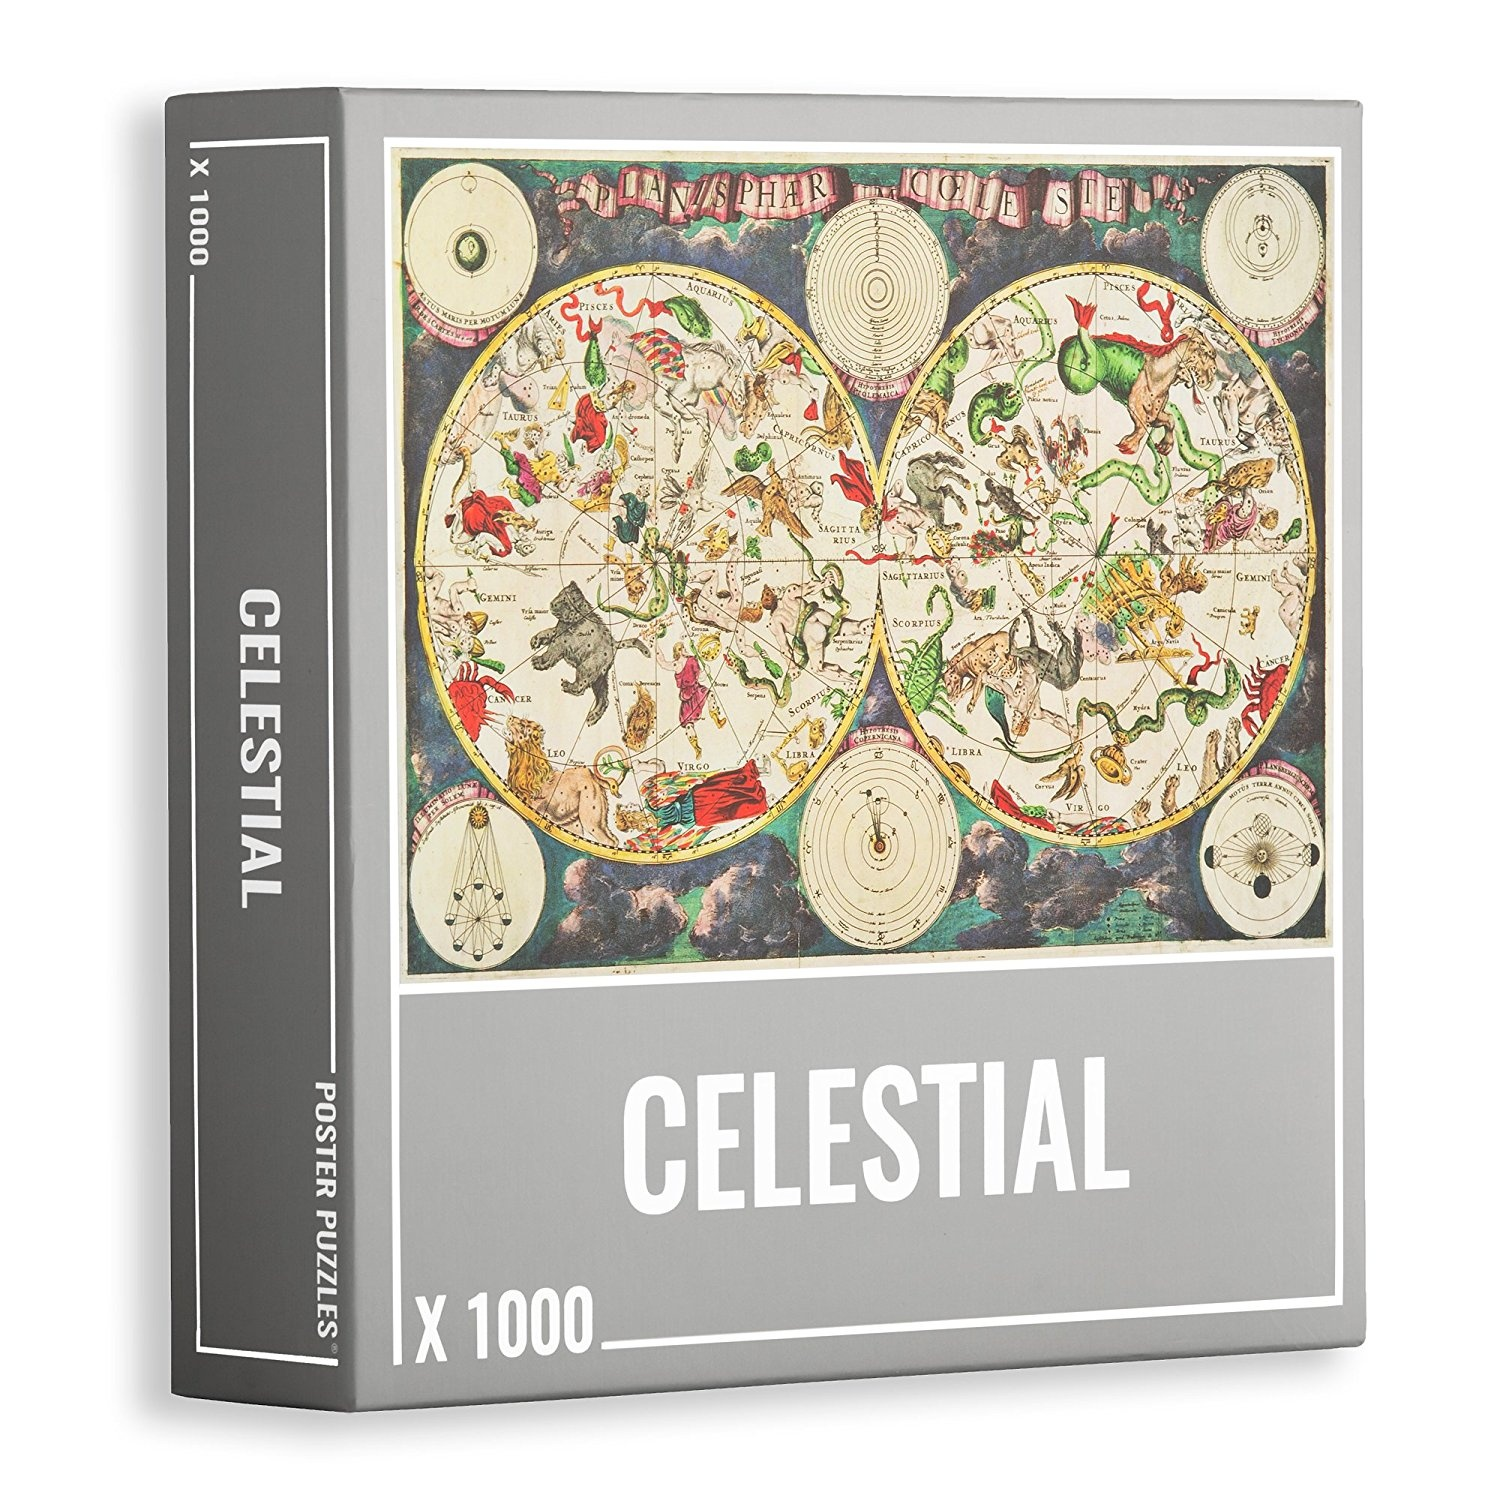 Map Of Australia Jigsaw Puzzle.Celestial Star Map Premium 1000 Piece Jigsaw Puzzle For Adults